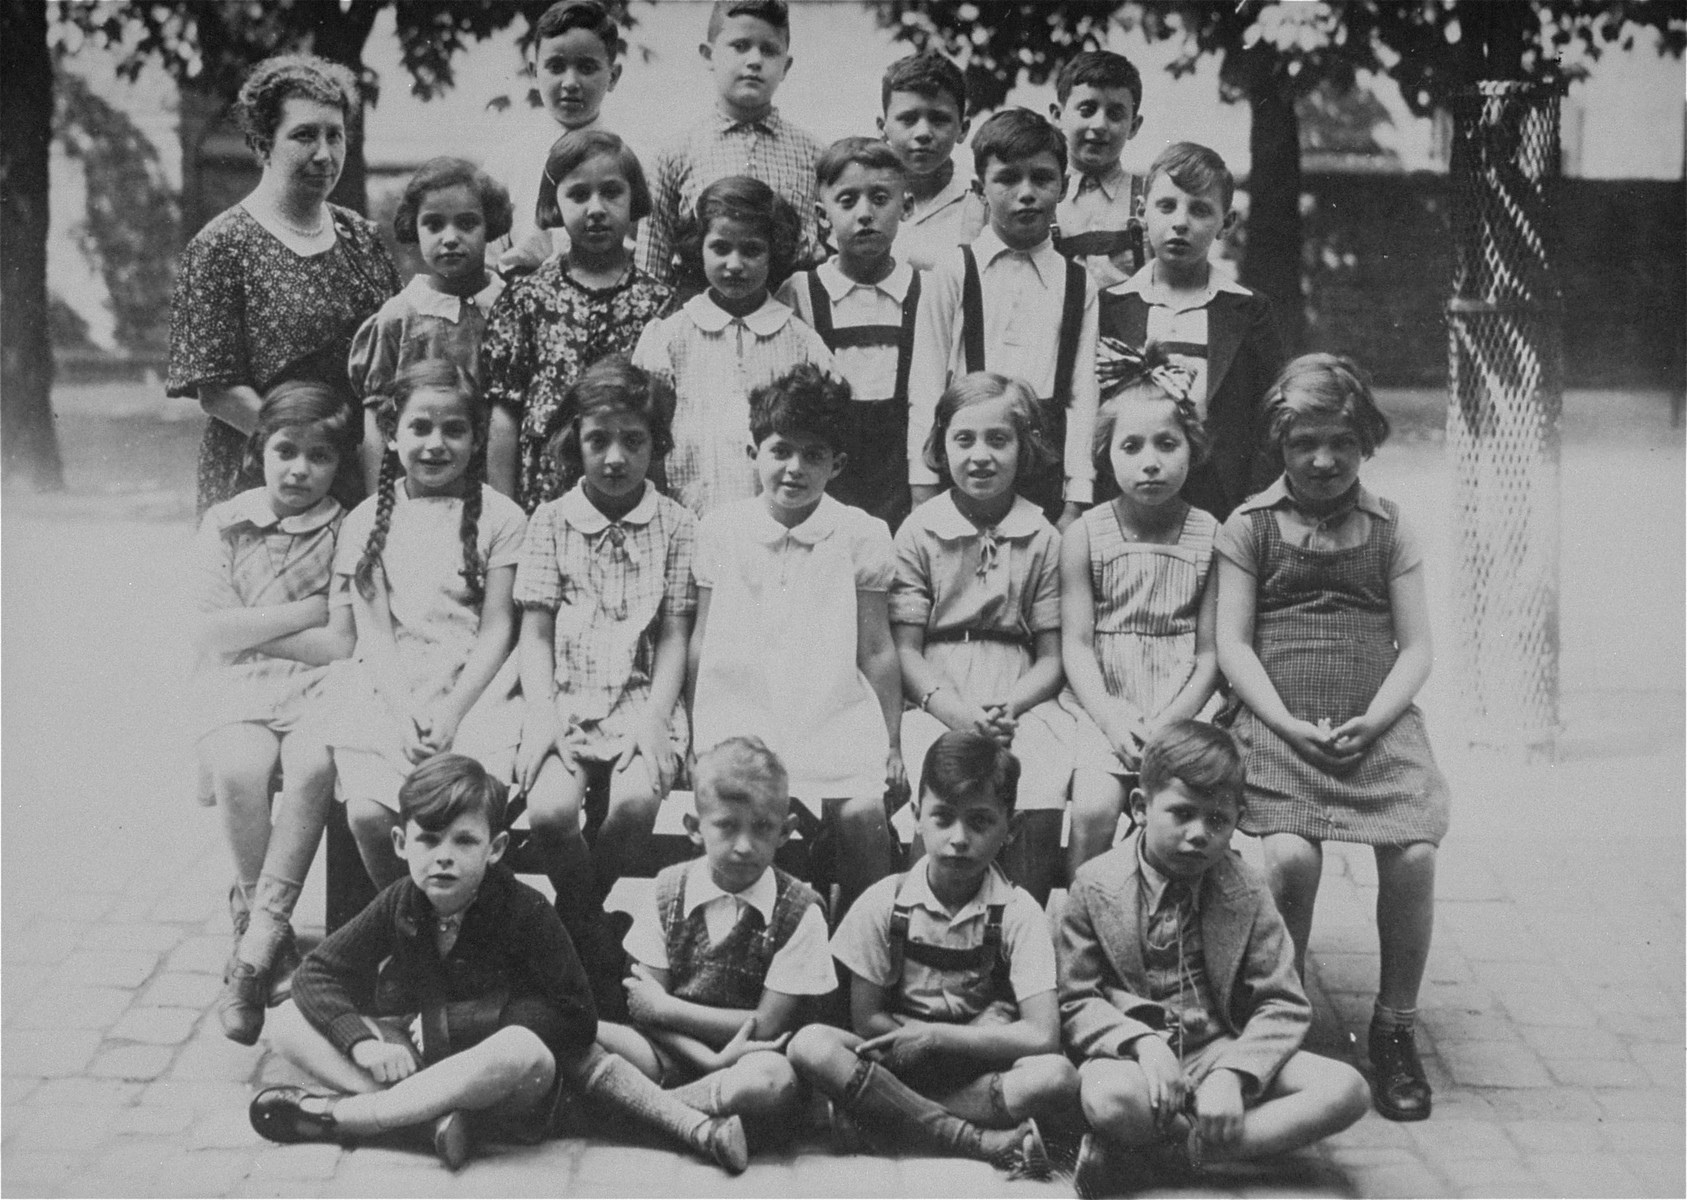 Group portrait of pupils in the first grade at a Jewish school in Karlsruhe, Germany that had been relocated to one floor at the 'Holzbodengymnasium' a special school for mentally disabled children.   Among those pictured is the teacher, Flora Hirsch.